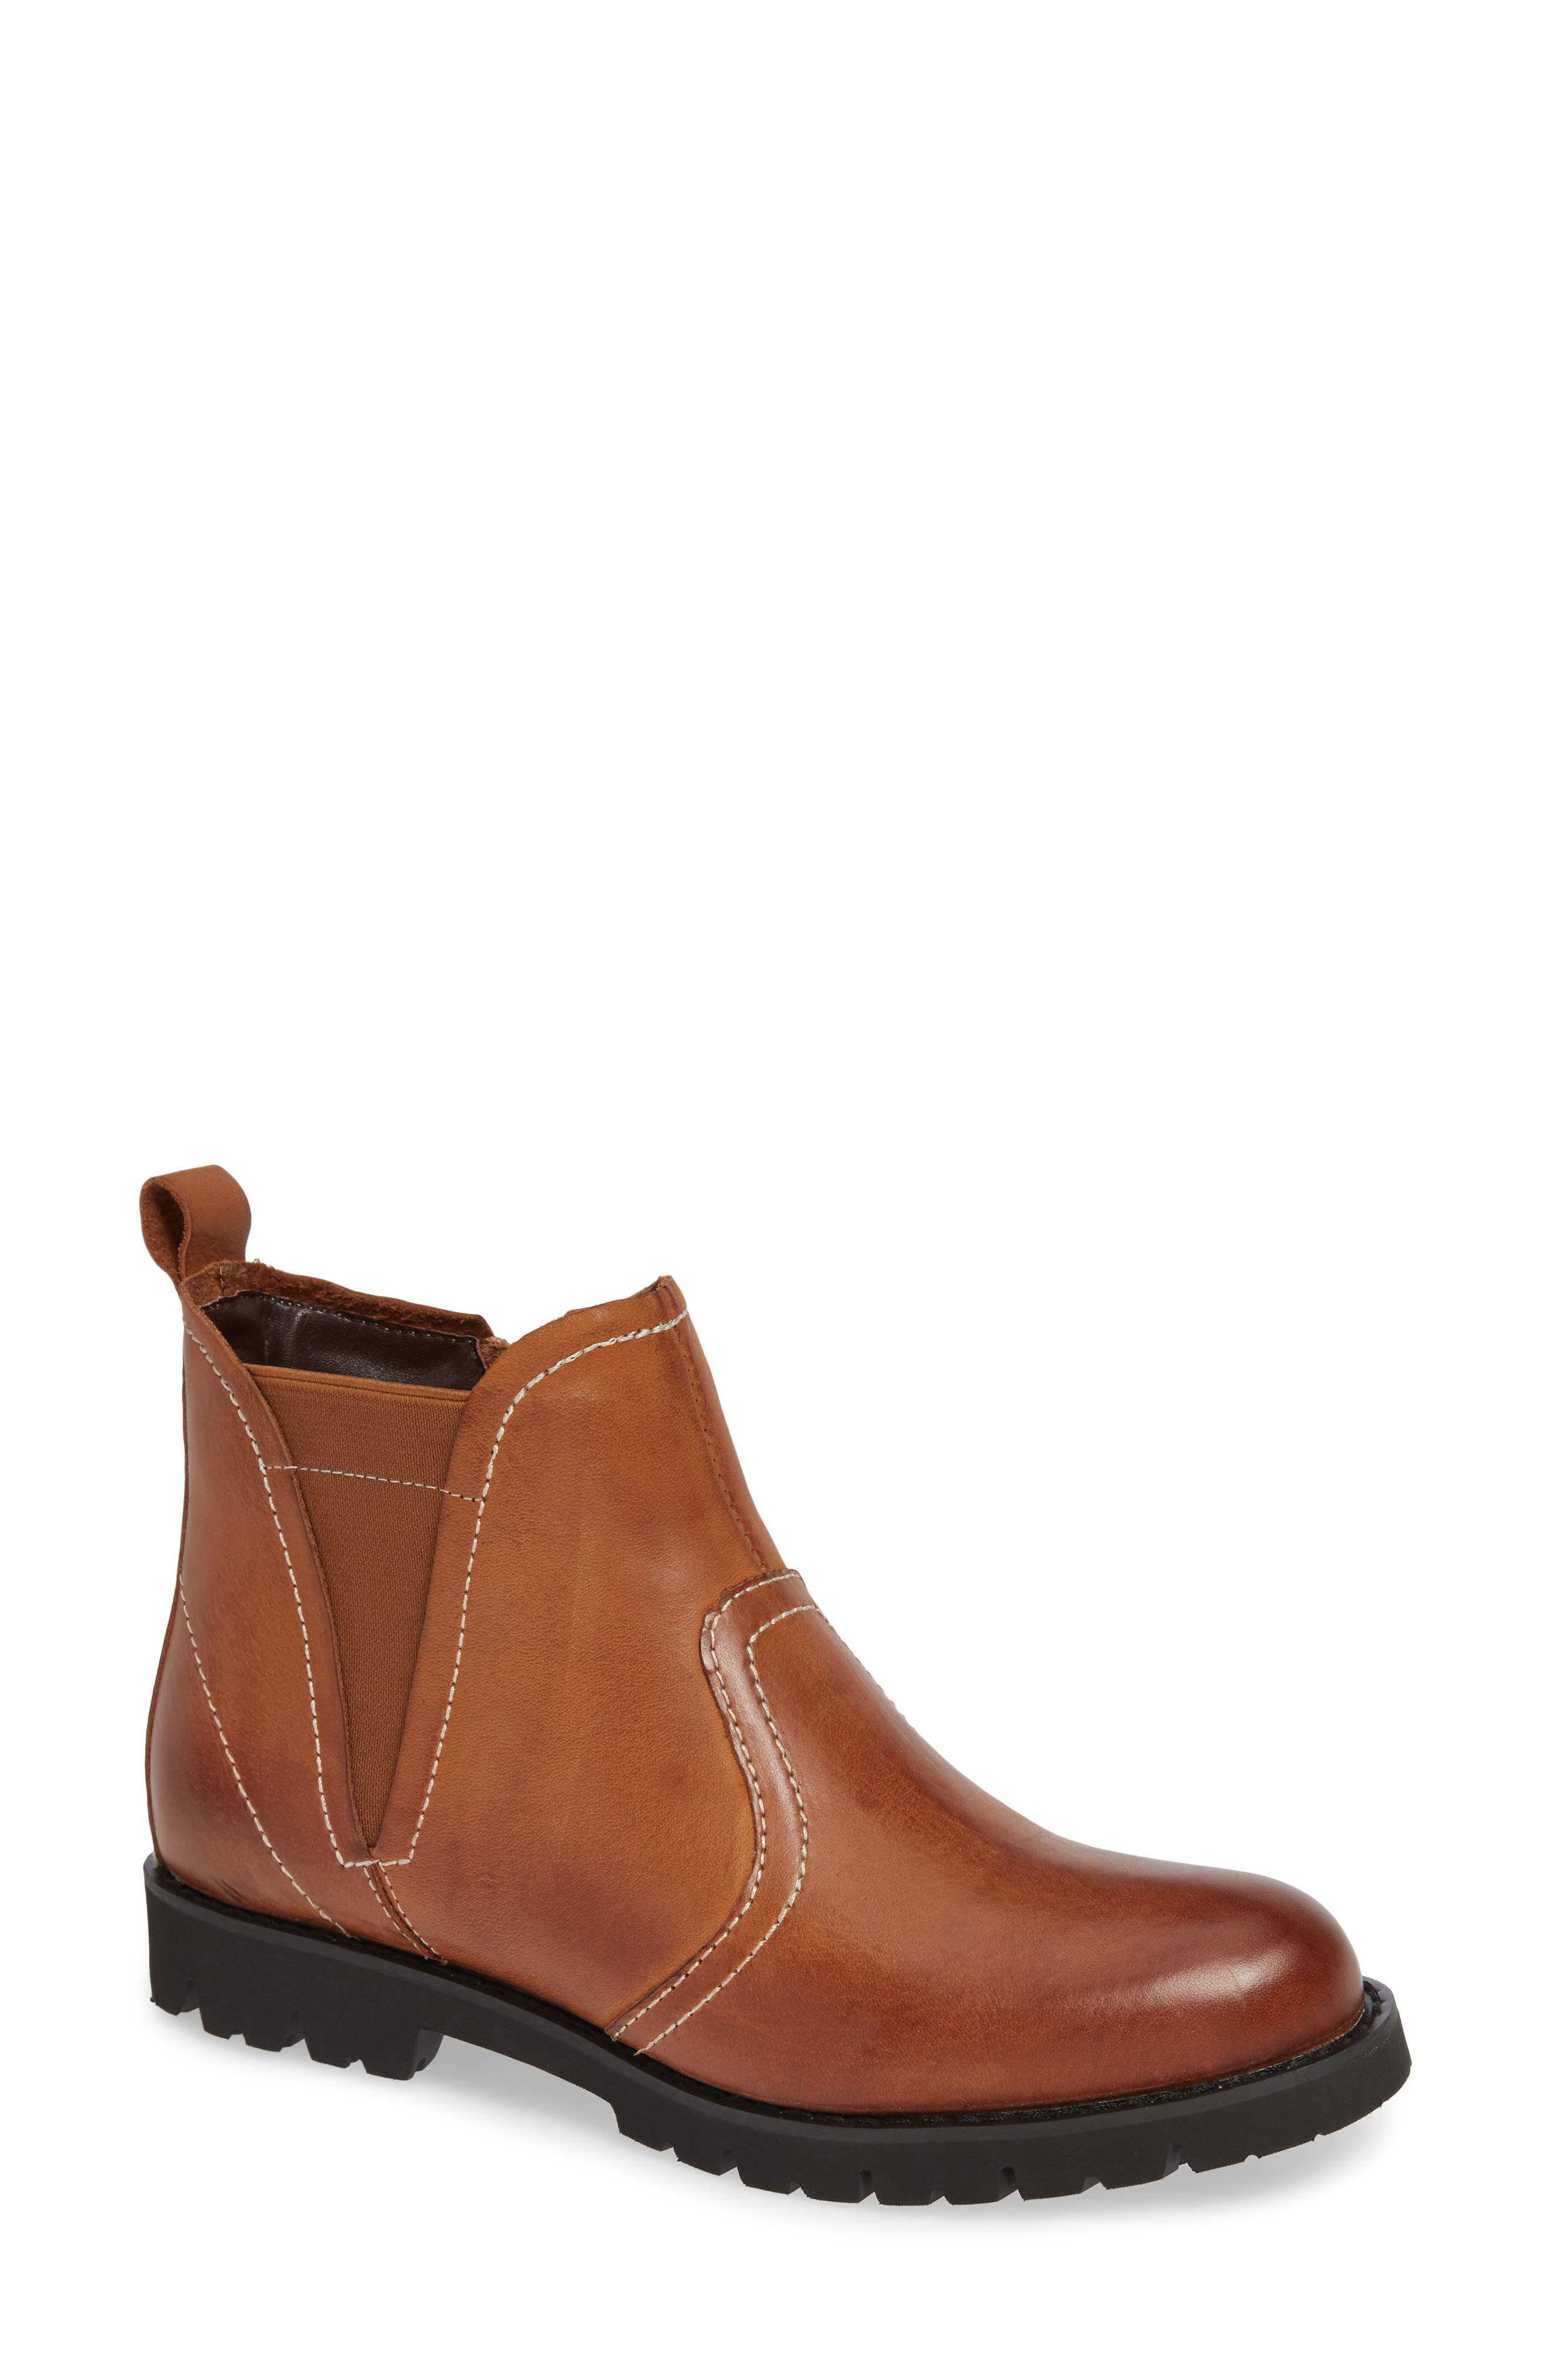 David Tate Reserve Lugged Bootie, Brown